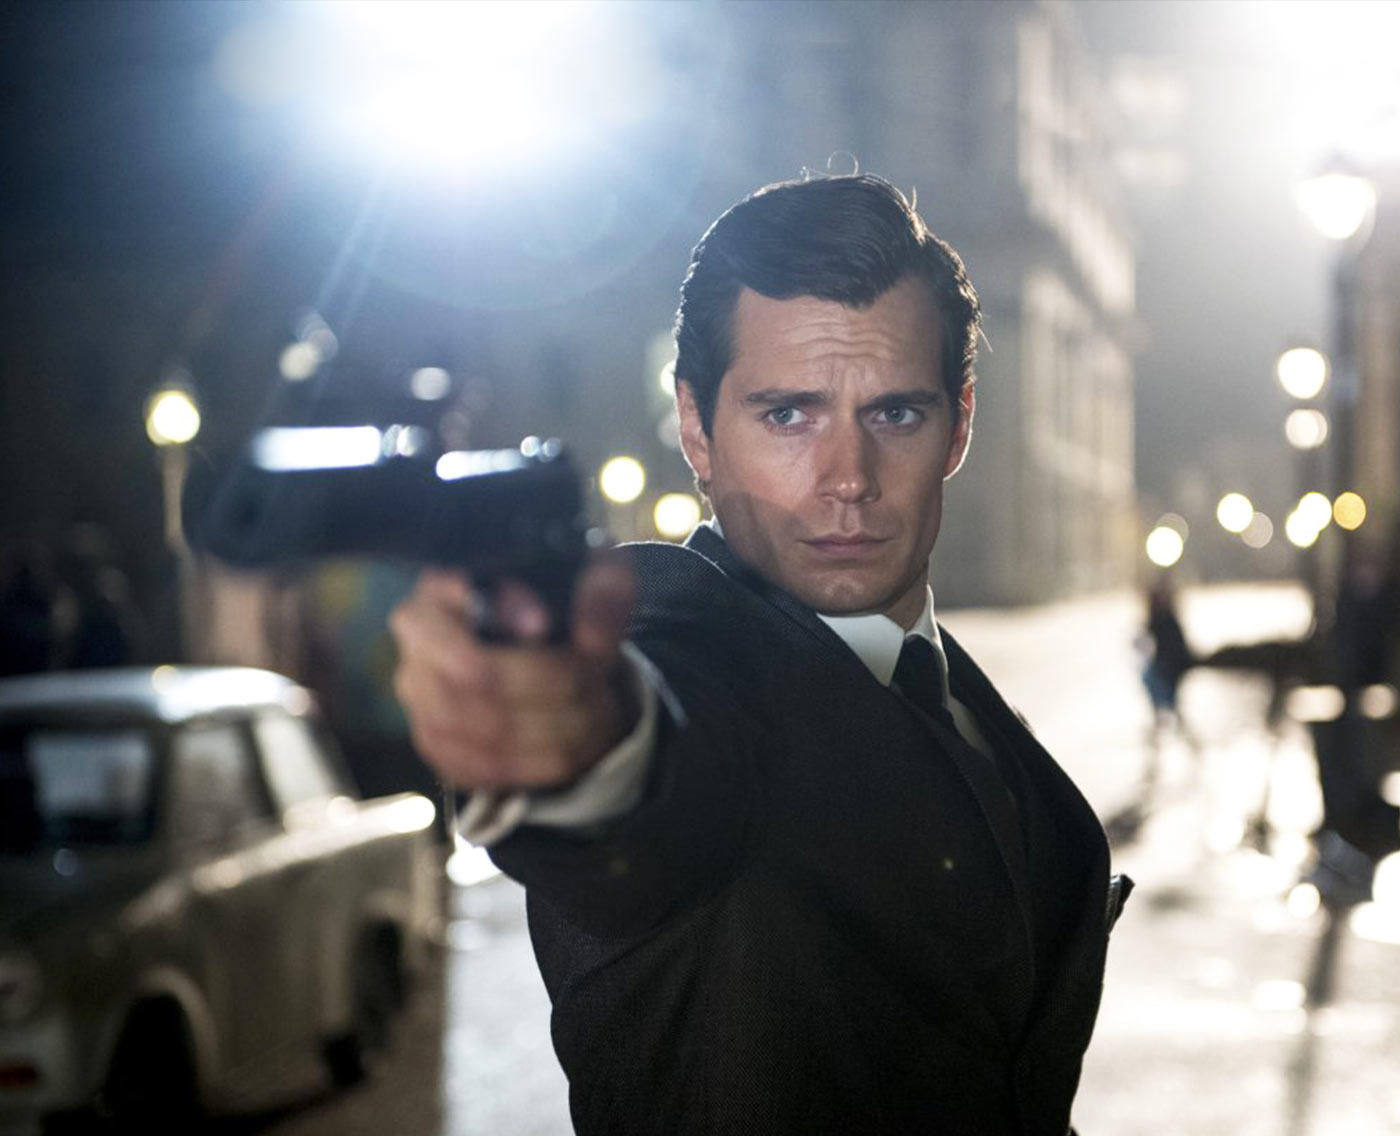 Check out the movie photos of 'The Man From U.N.C.L.E.'